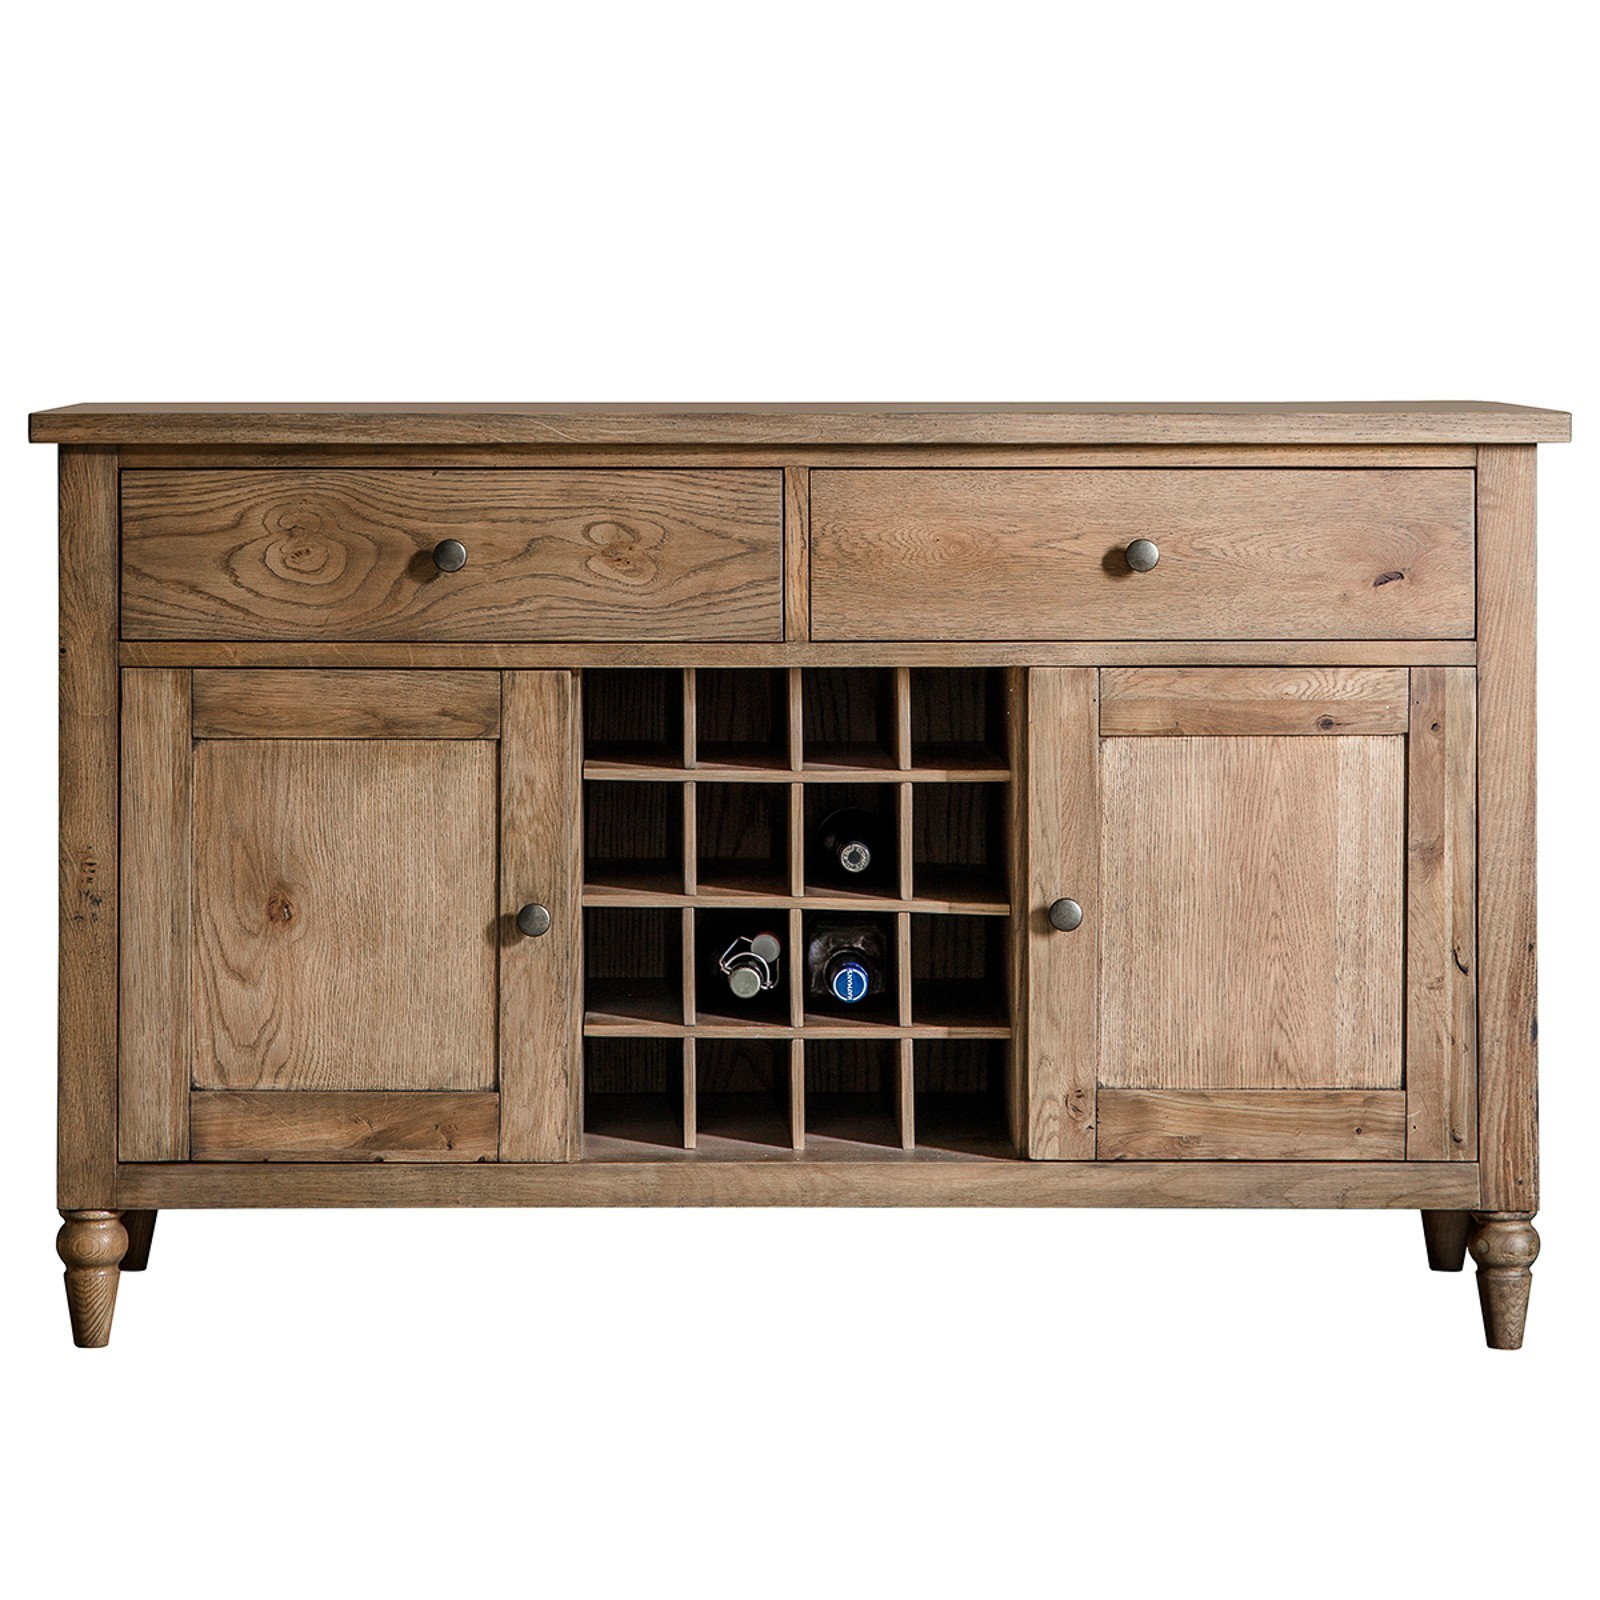 Charlotte Oak Timber 2 Door 2 Drawer Sideboard, 130cm